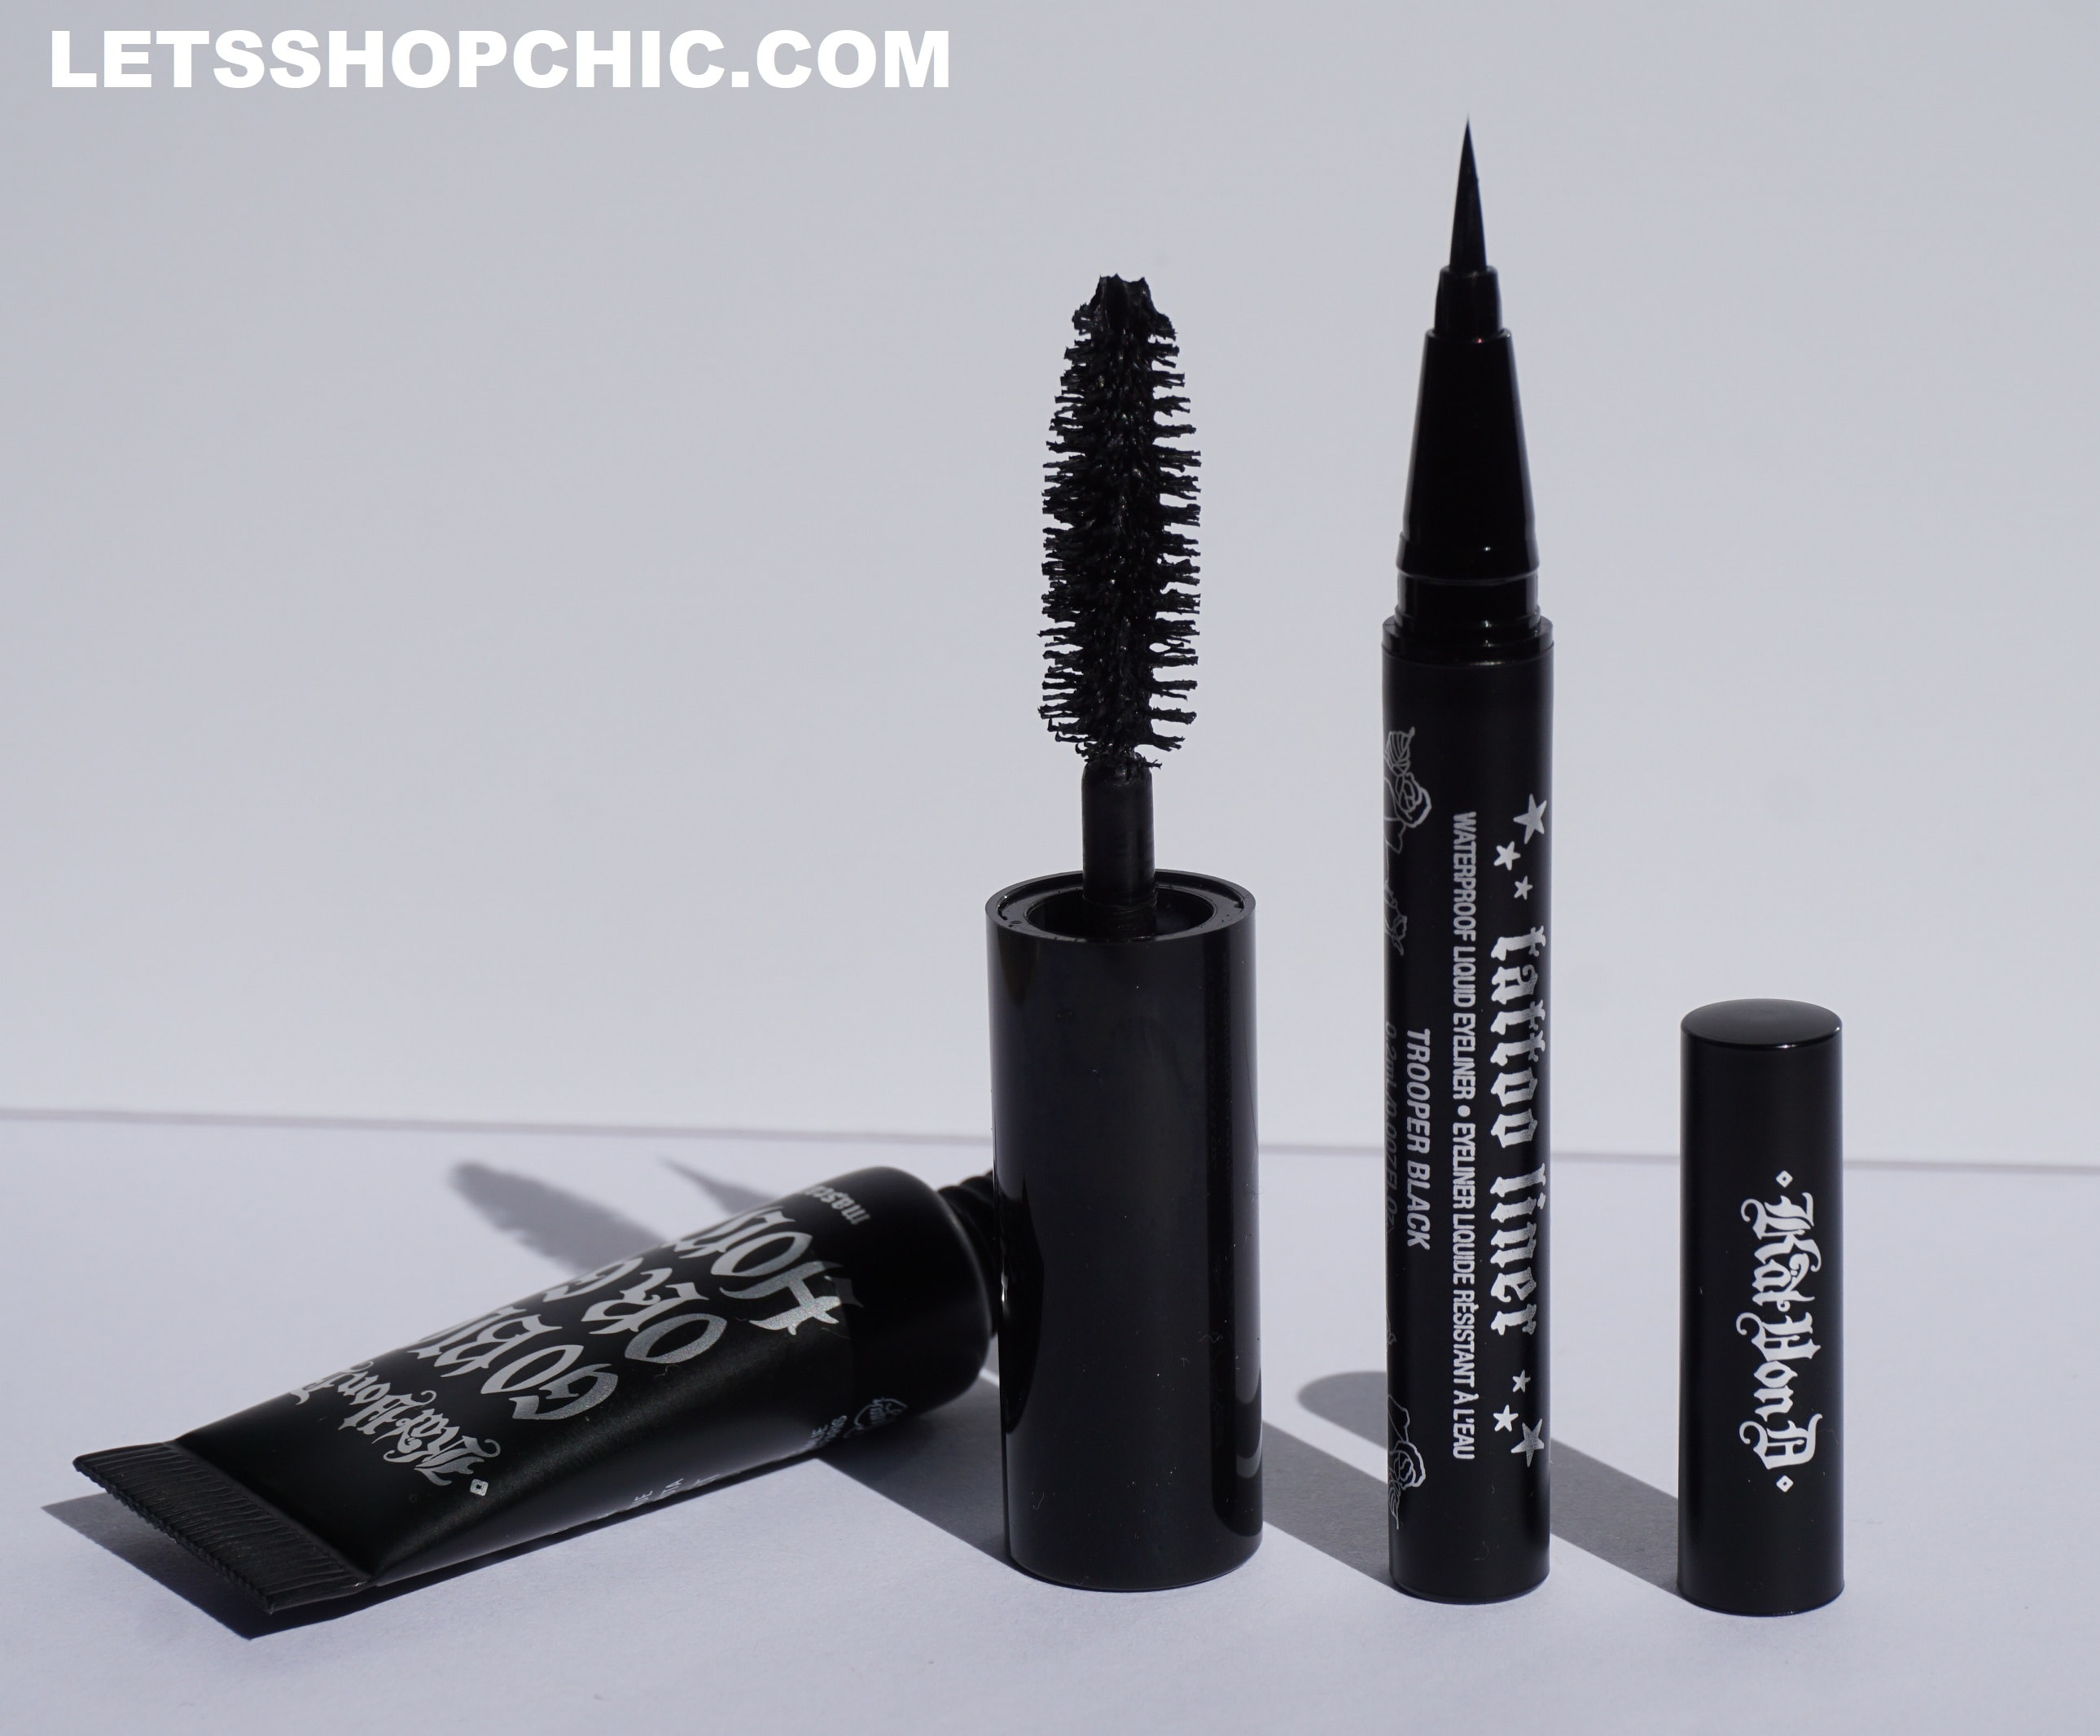 Kat Von D Liquid Eyeliner and 'Go Big or Go Home' Mascara